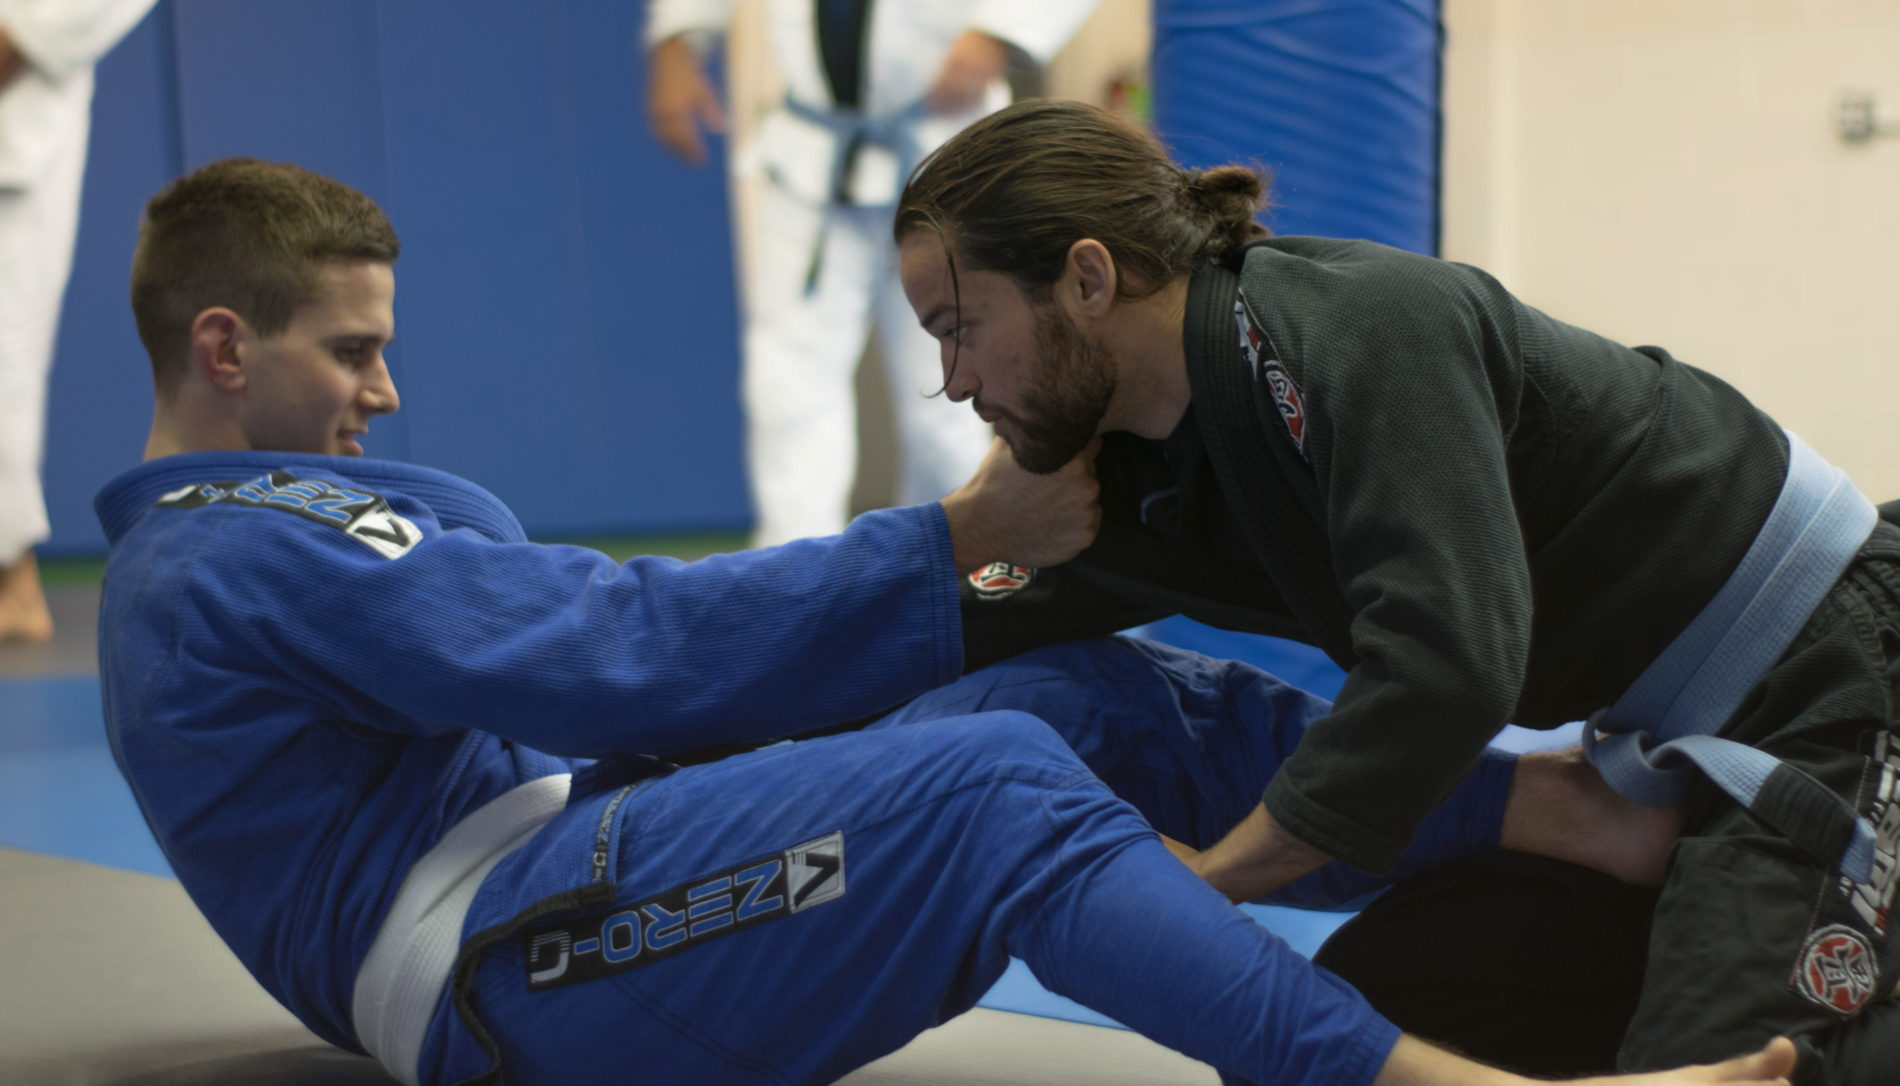 You'll be learning Brazilian Jiu Jitsu from the area's best and most qualified staff